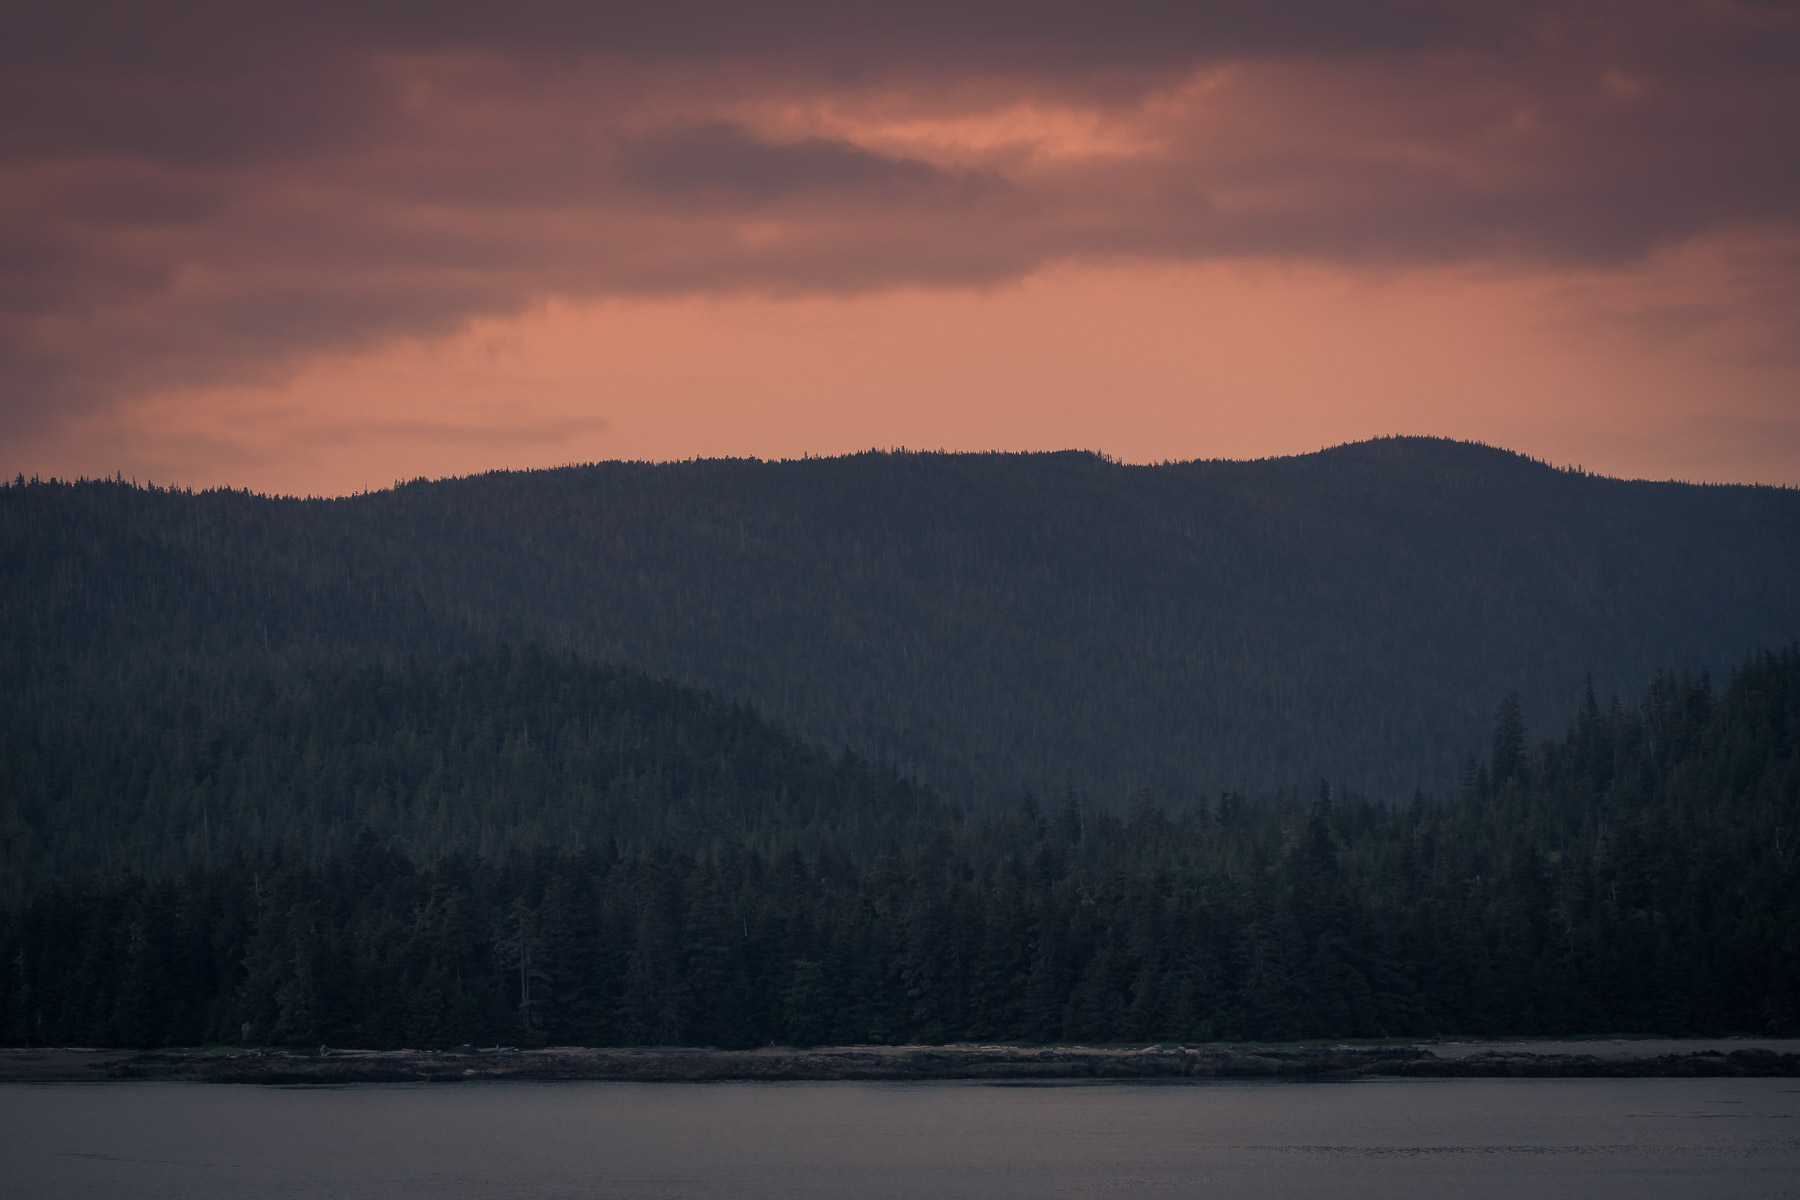 The sun sets on the far side of Gravina Island near Ketchikan, Alaska.